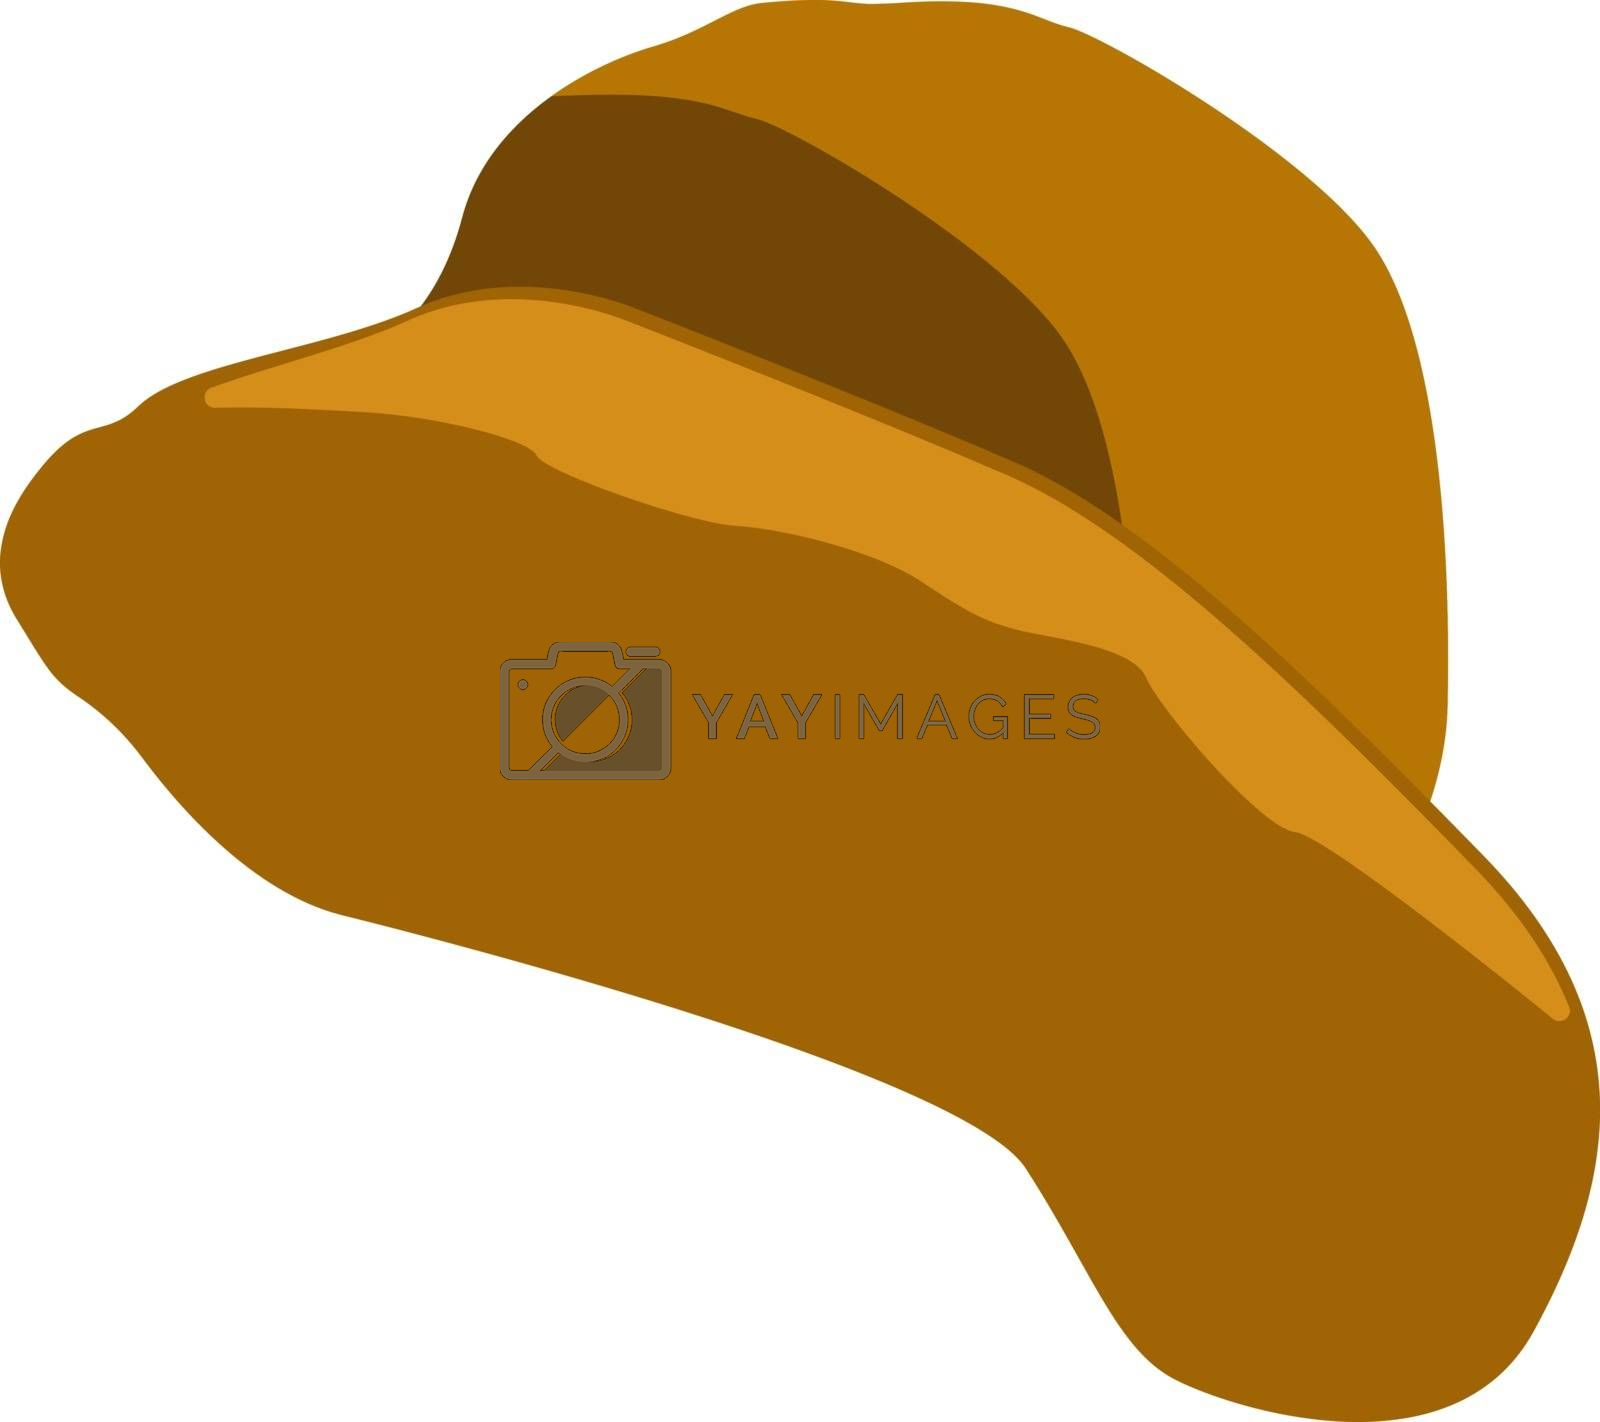 Yellow hat, illustration, vector on white background.